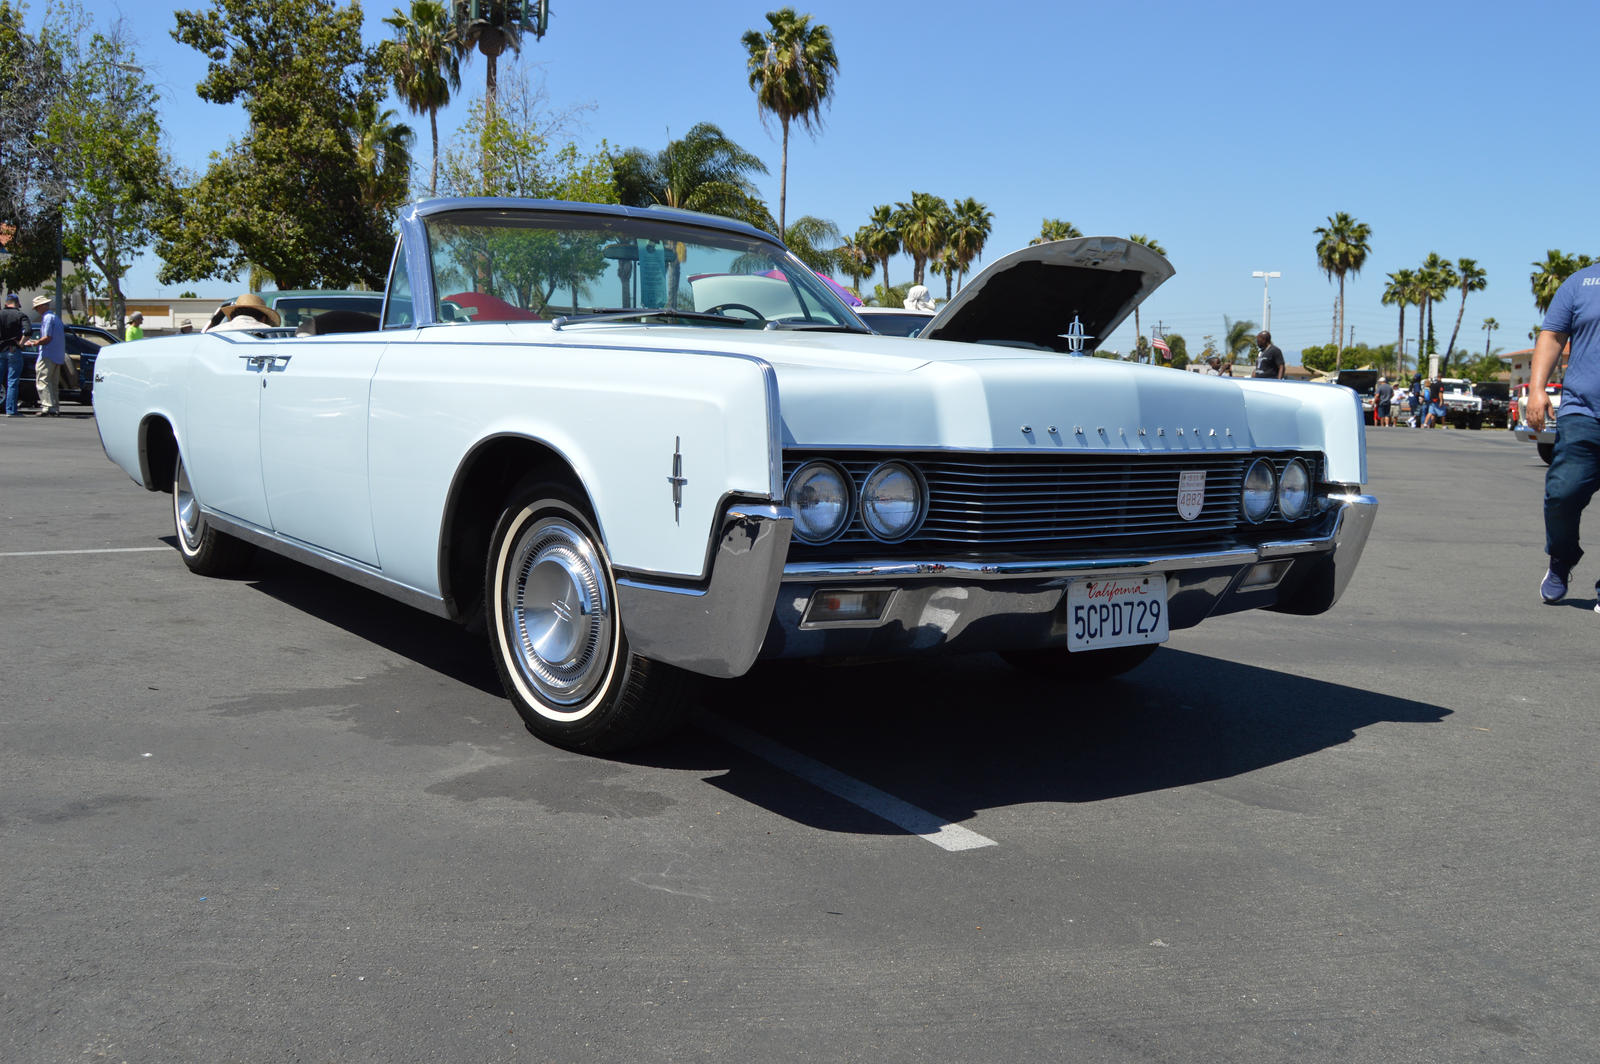 1966 lincoln continental convertible vi by brooklyn47 on. Black Bedroom Furniture Sets. Home Design Ideas